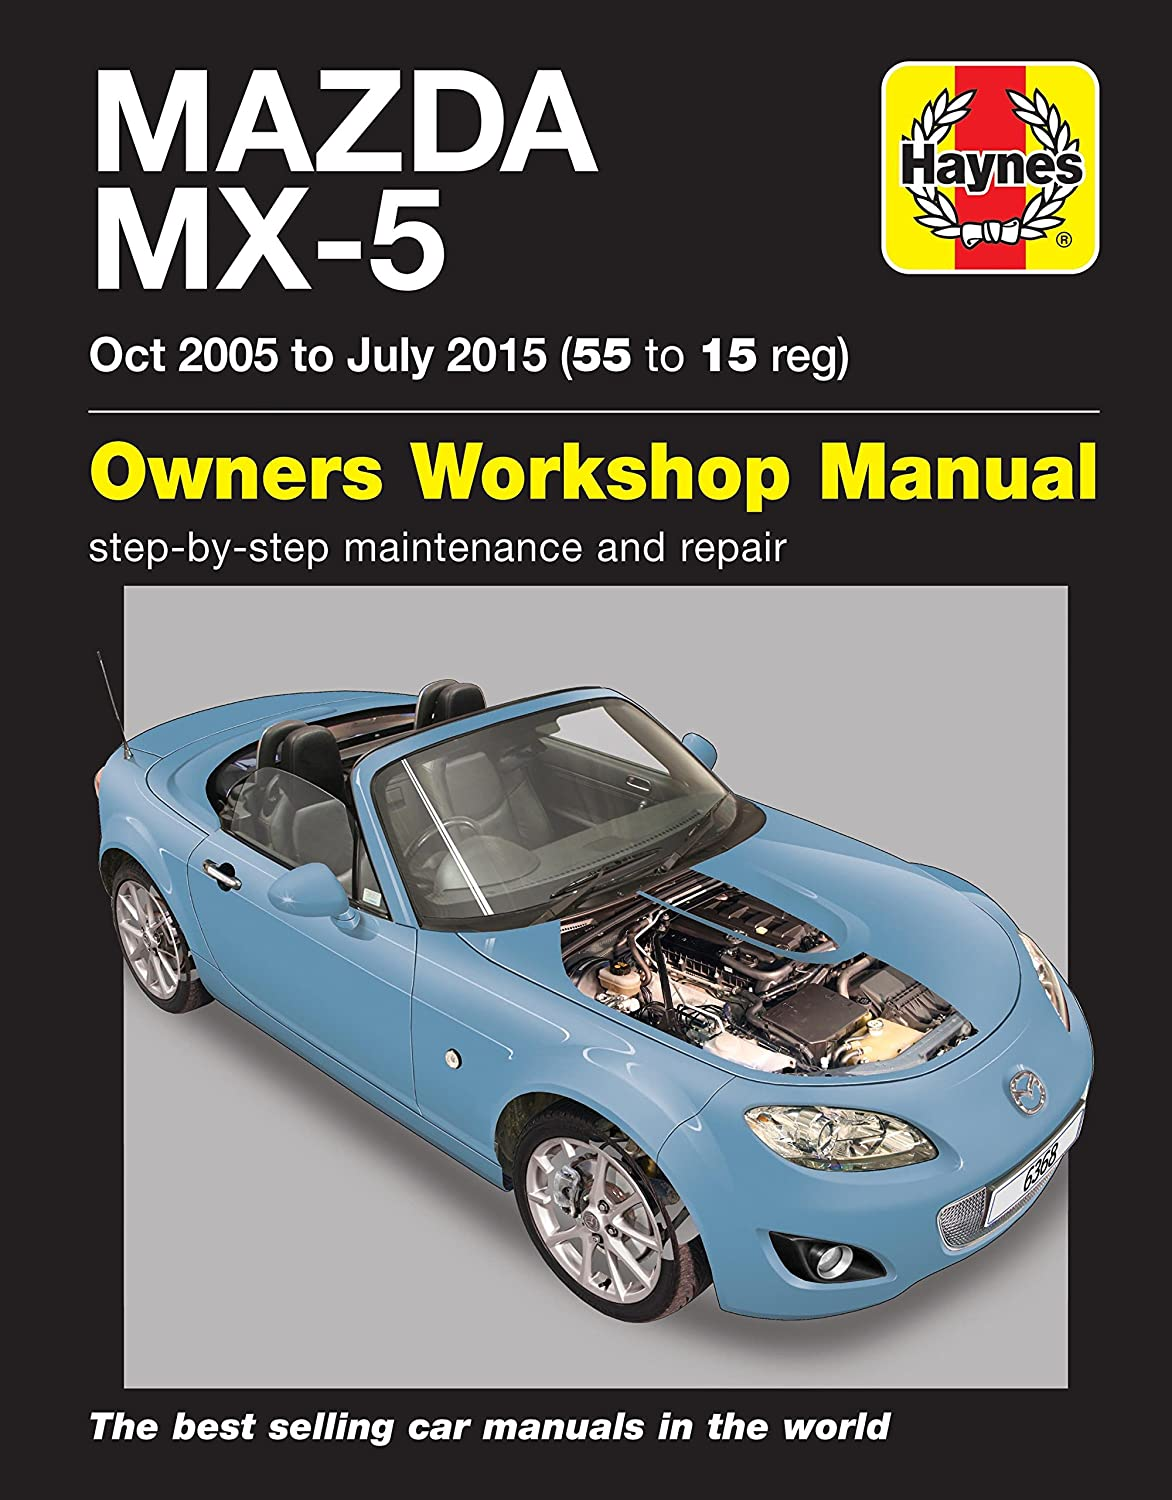 Mazda MX-5 Repair Manual Haynes Manual Service Manual Workshop Manual  2005-2015: Amazon.co.uk: Car & Motorbike